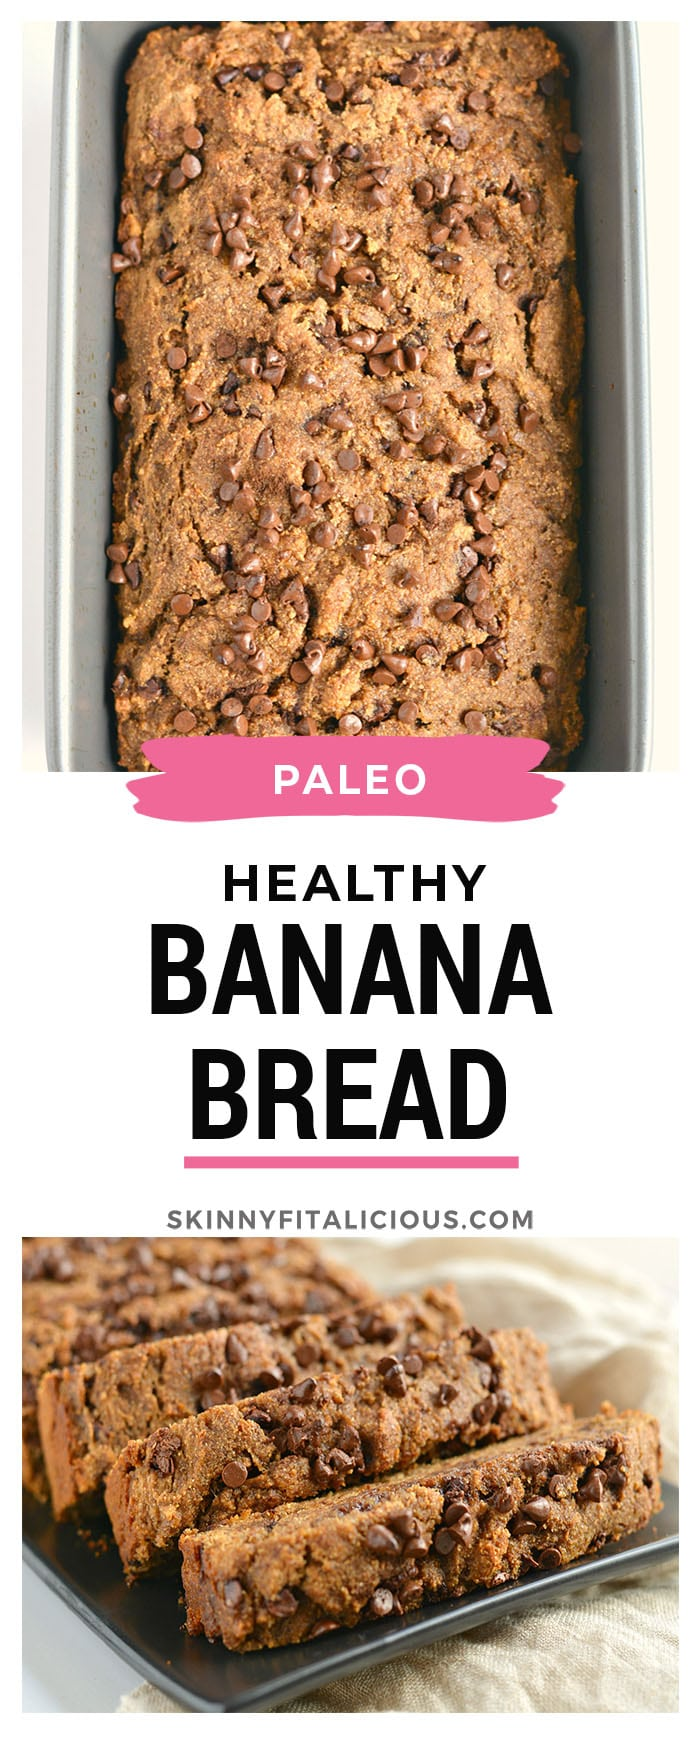 This Ultimate Healthy Chocolate Chip Banana Bread is a chocolate lovers dream! Made with wholesome ingredients and with zero added sugar or oil, this gluten and dairy free banana bread is the ultimate sweet treat! Gluten Free + Low Calorie